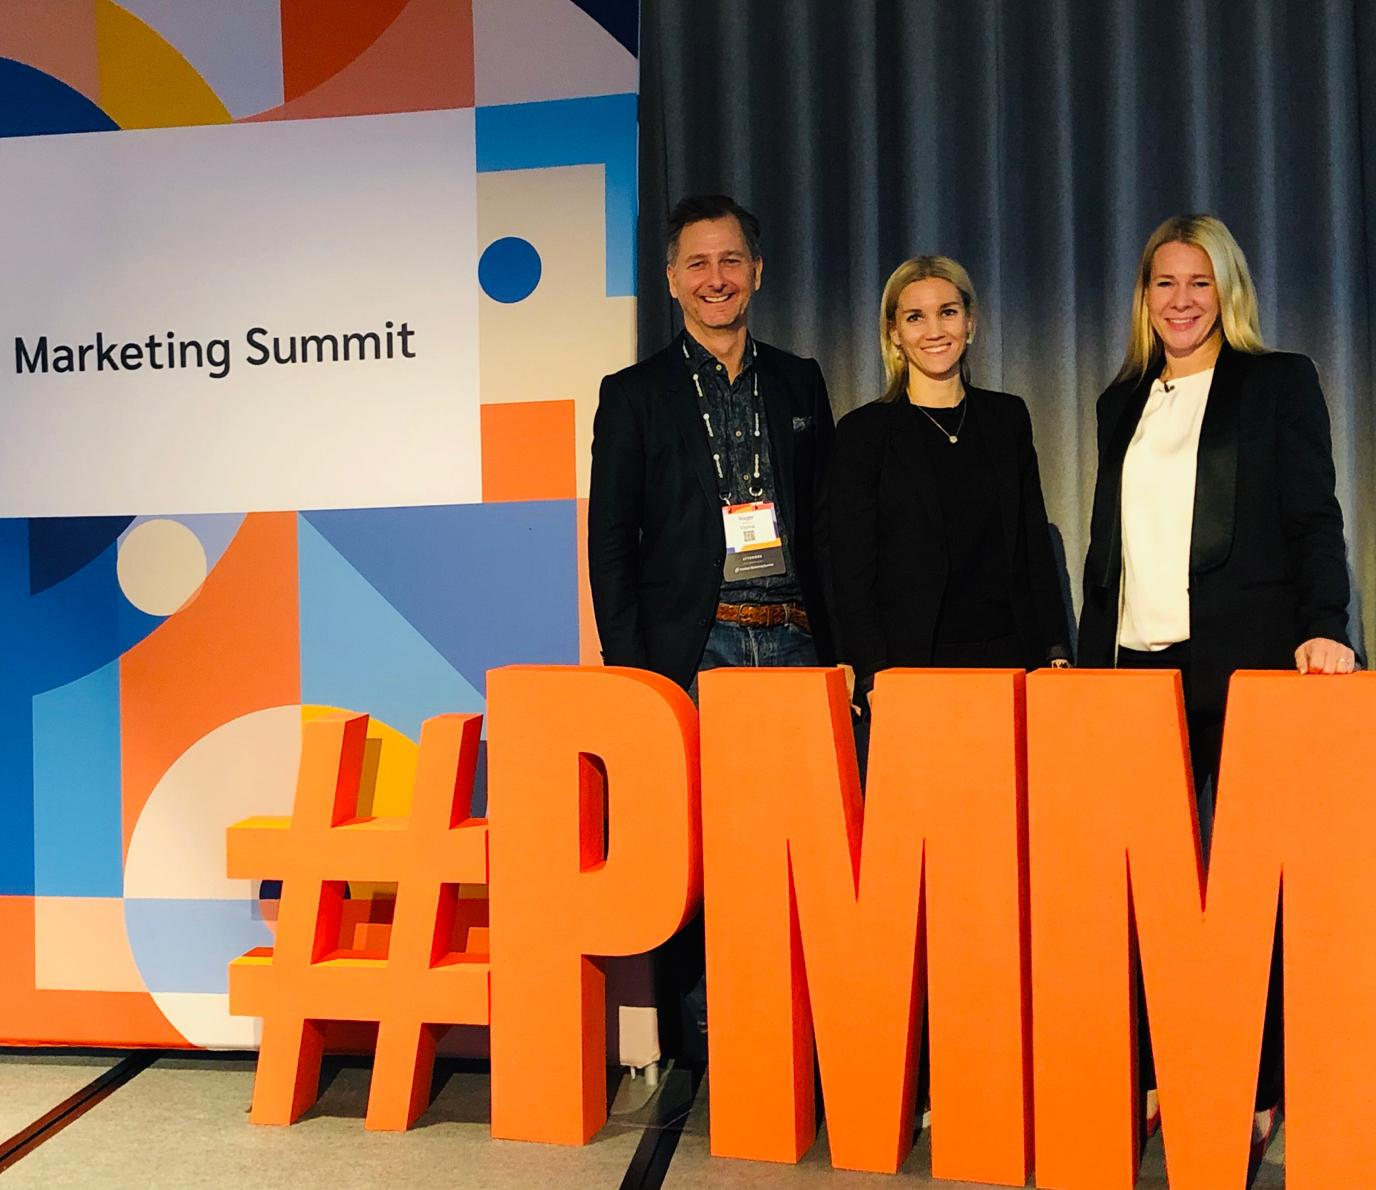 PMA wanted to get insight into how a growing international company like Visma work with go-to-market strategies for global cloud products